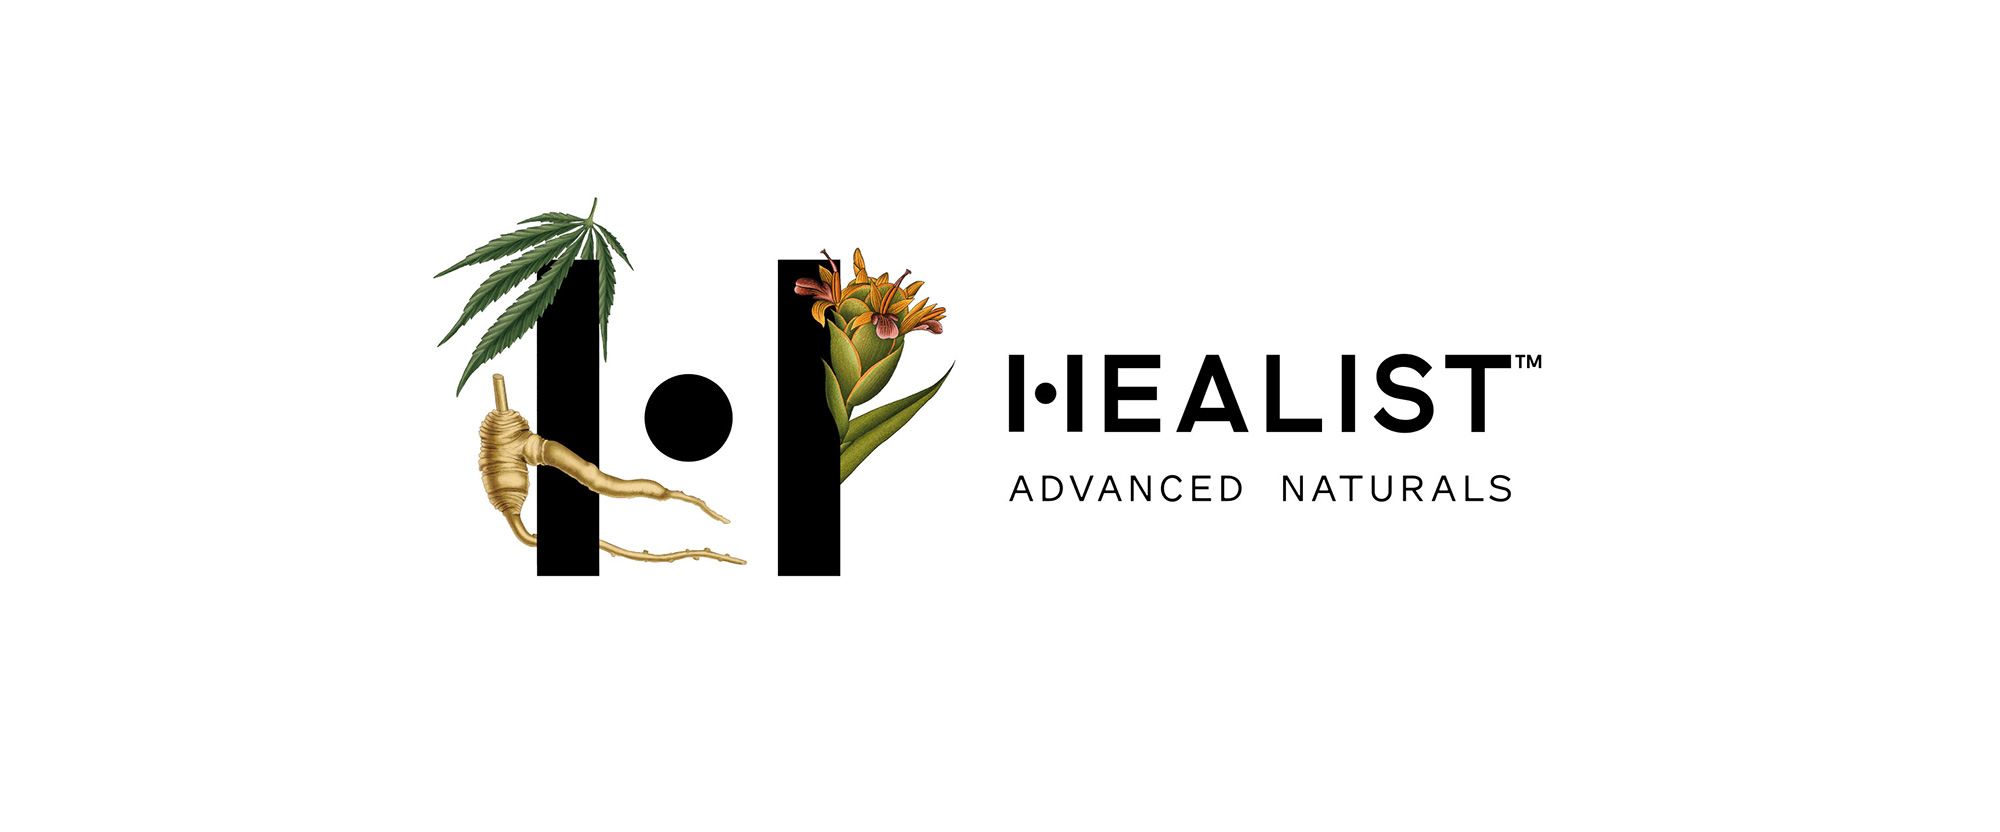 Reviewed: New Logo, Identity, and Product Packaging for Healist Naturals by Robot Food